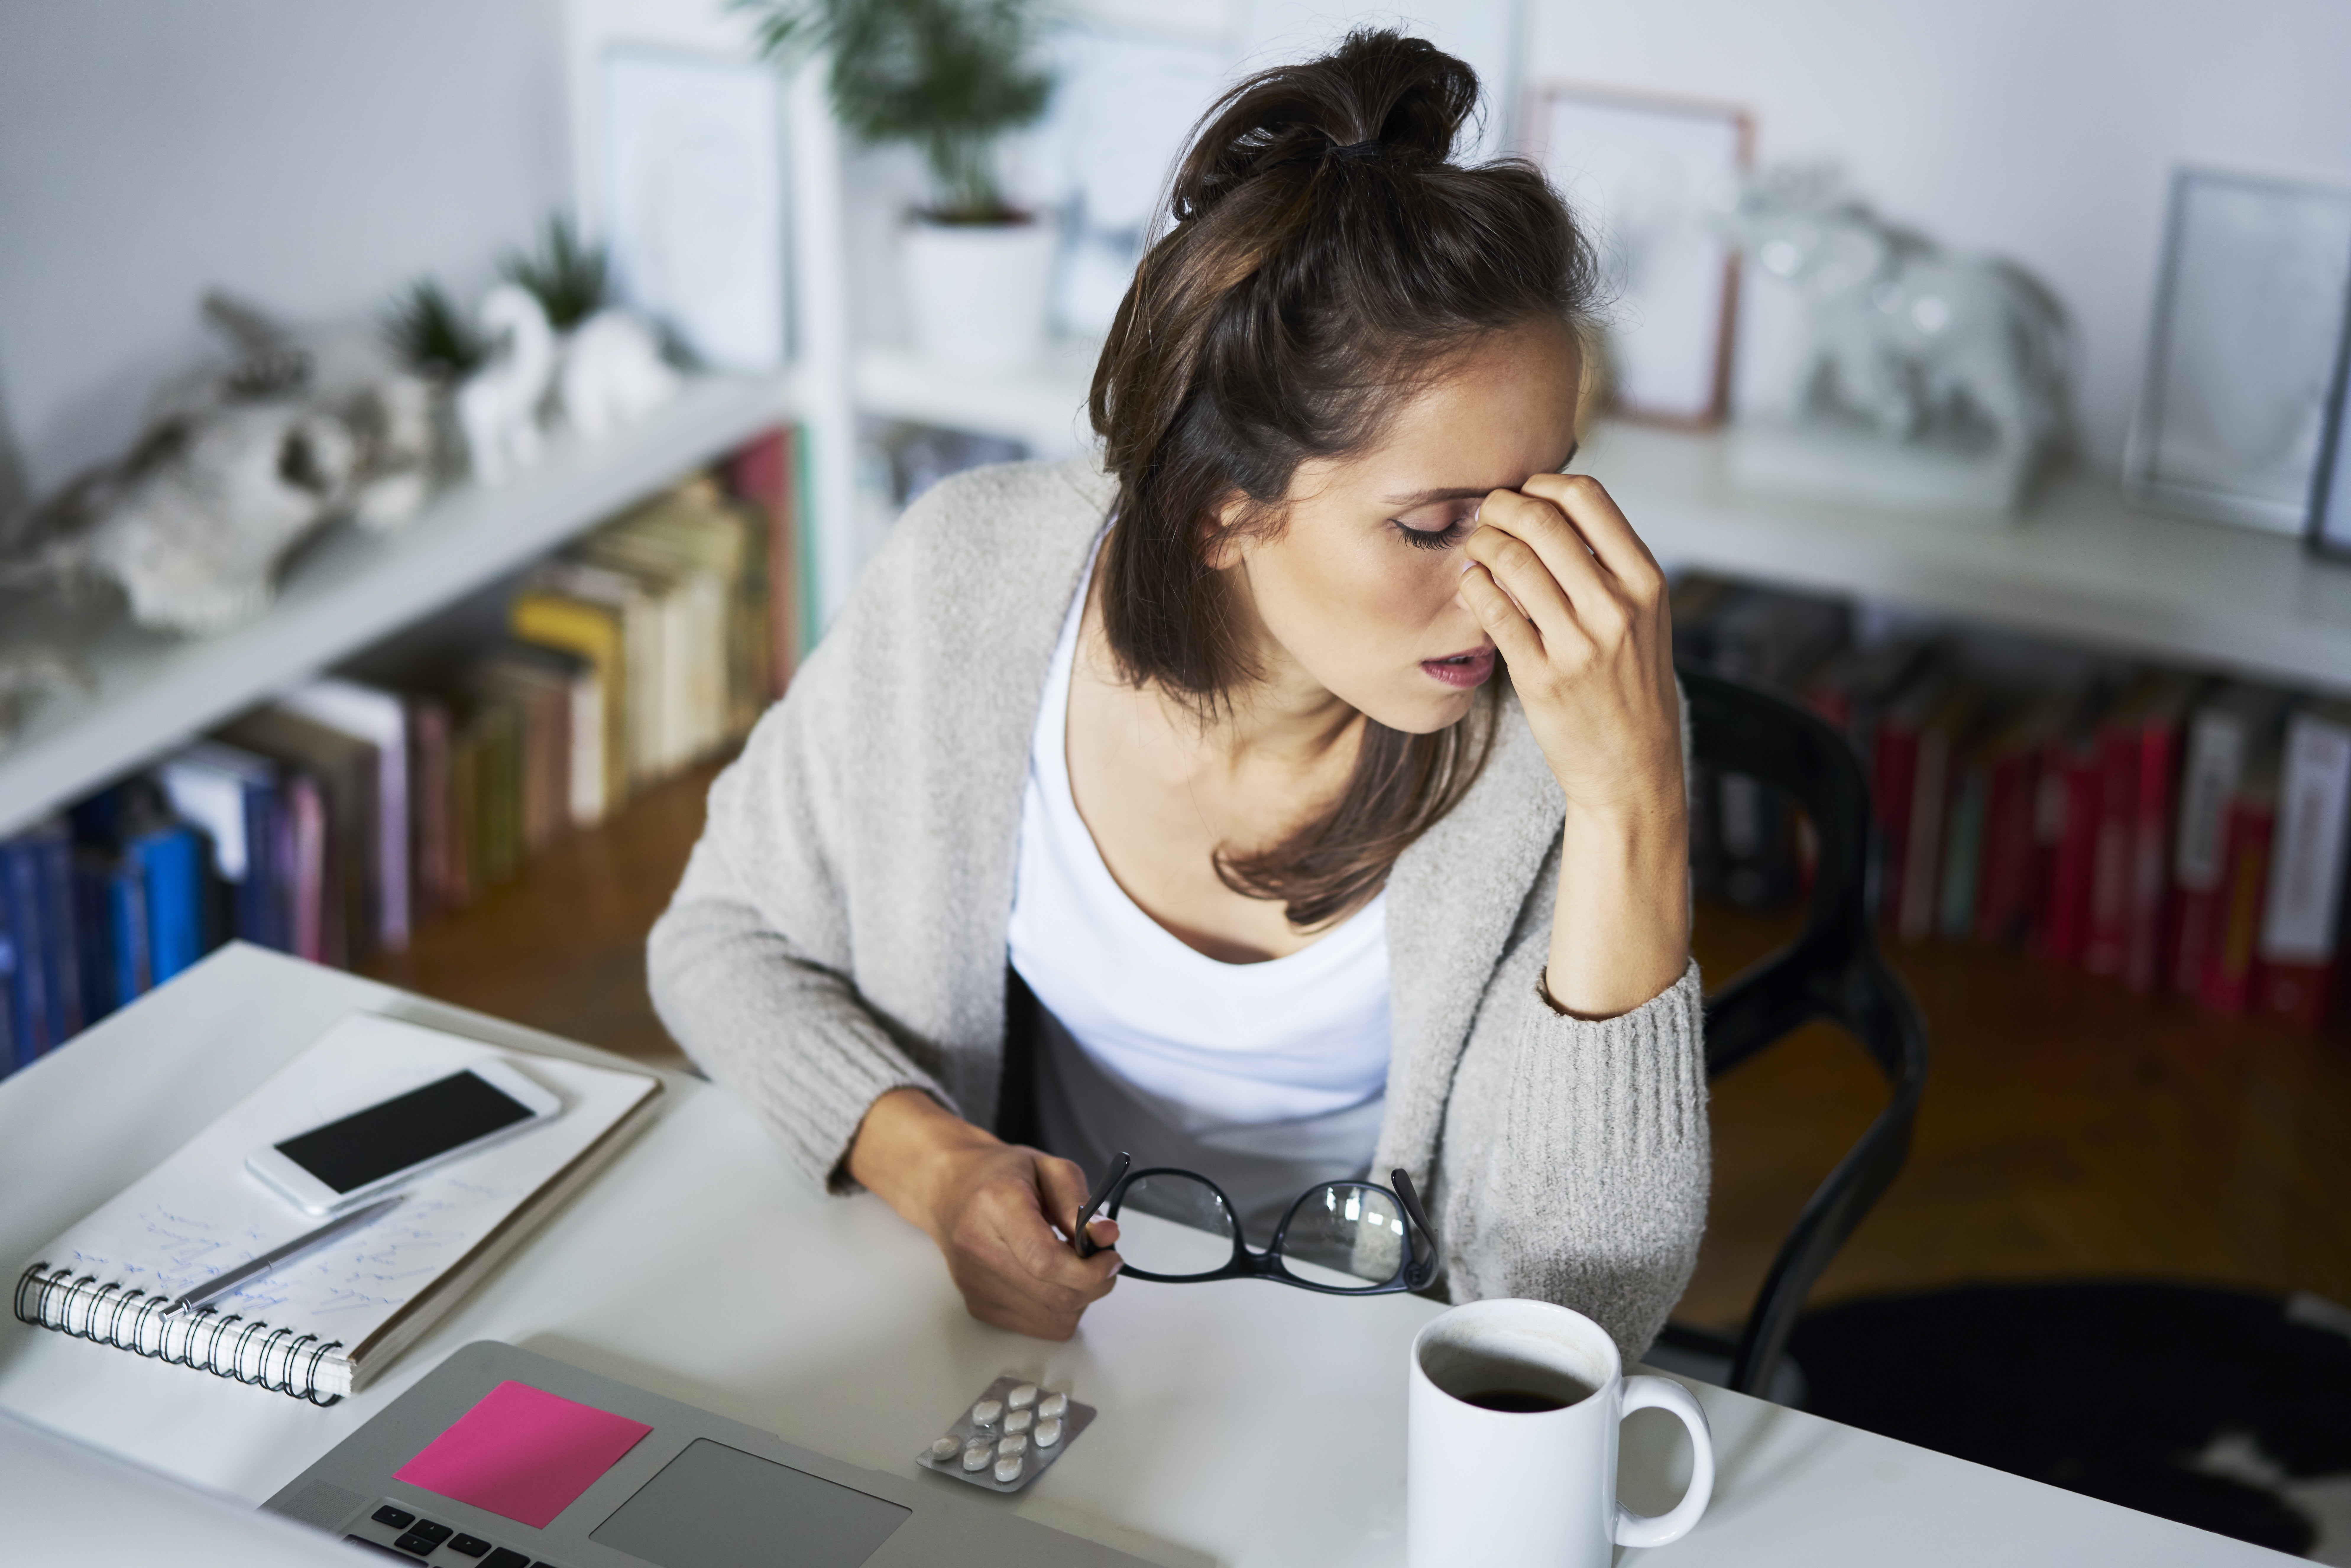 Stressed woman sitting at work desk